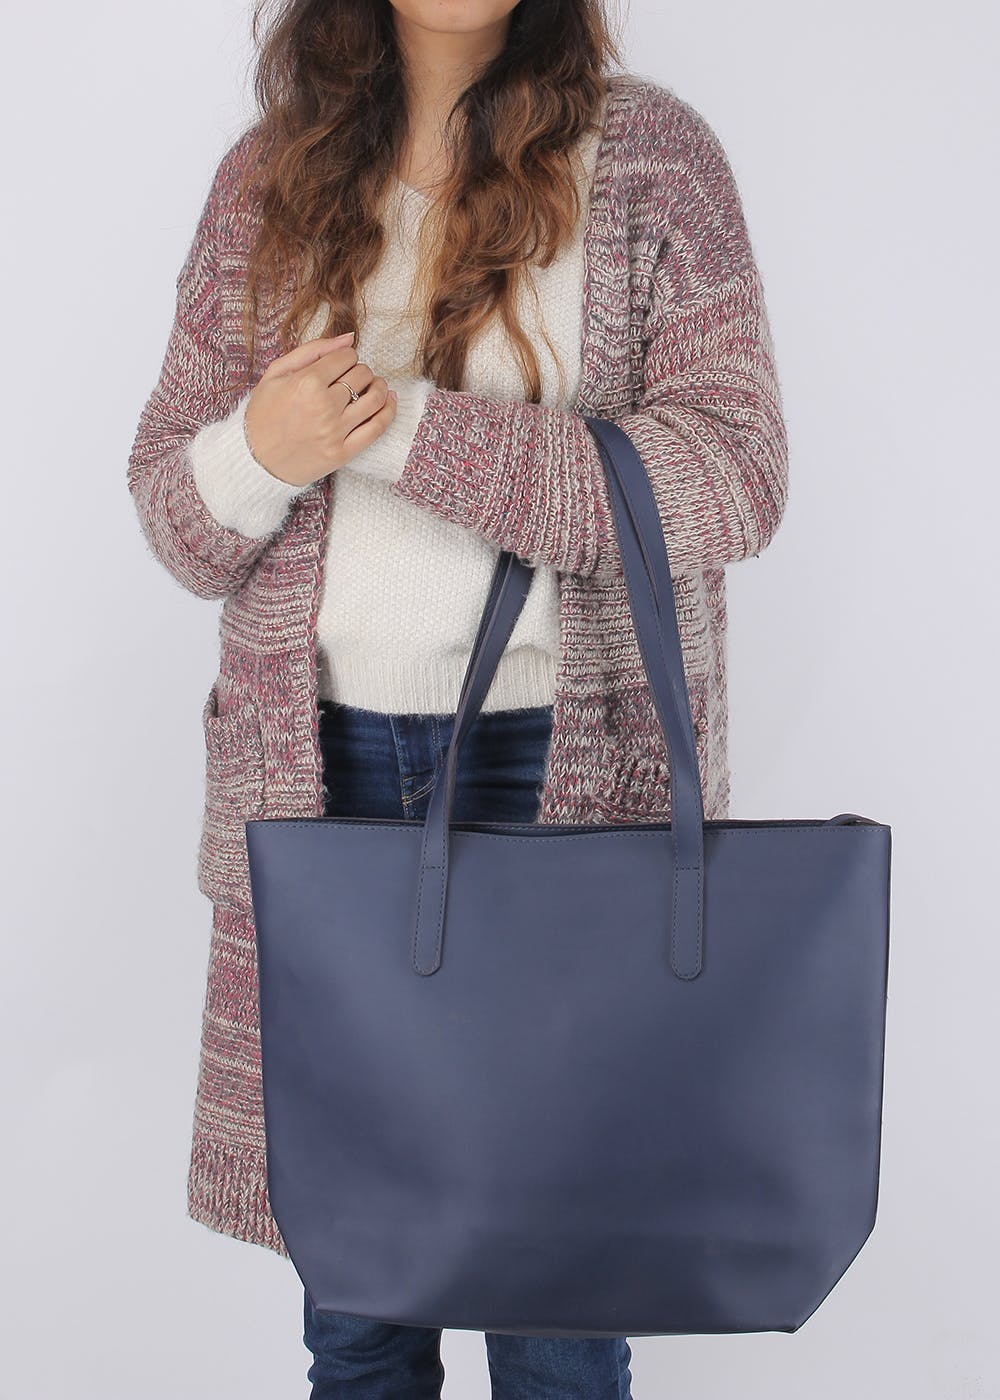 Front Pocket Detail Solid Oversized Tote